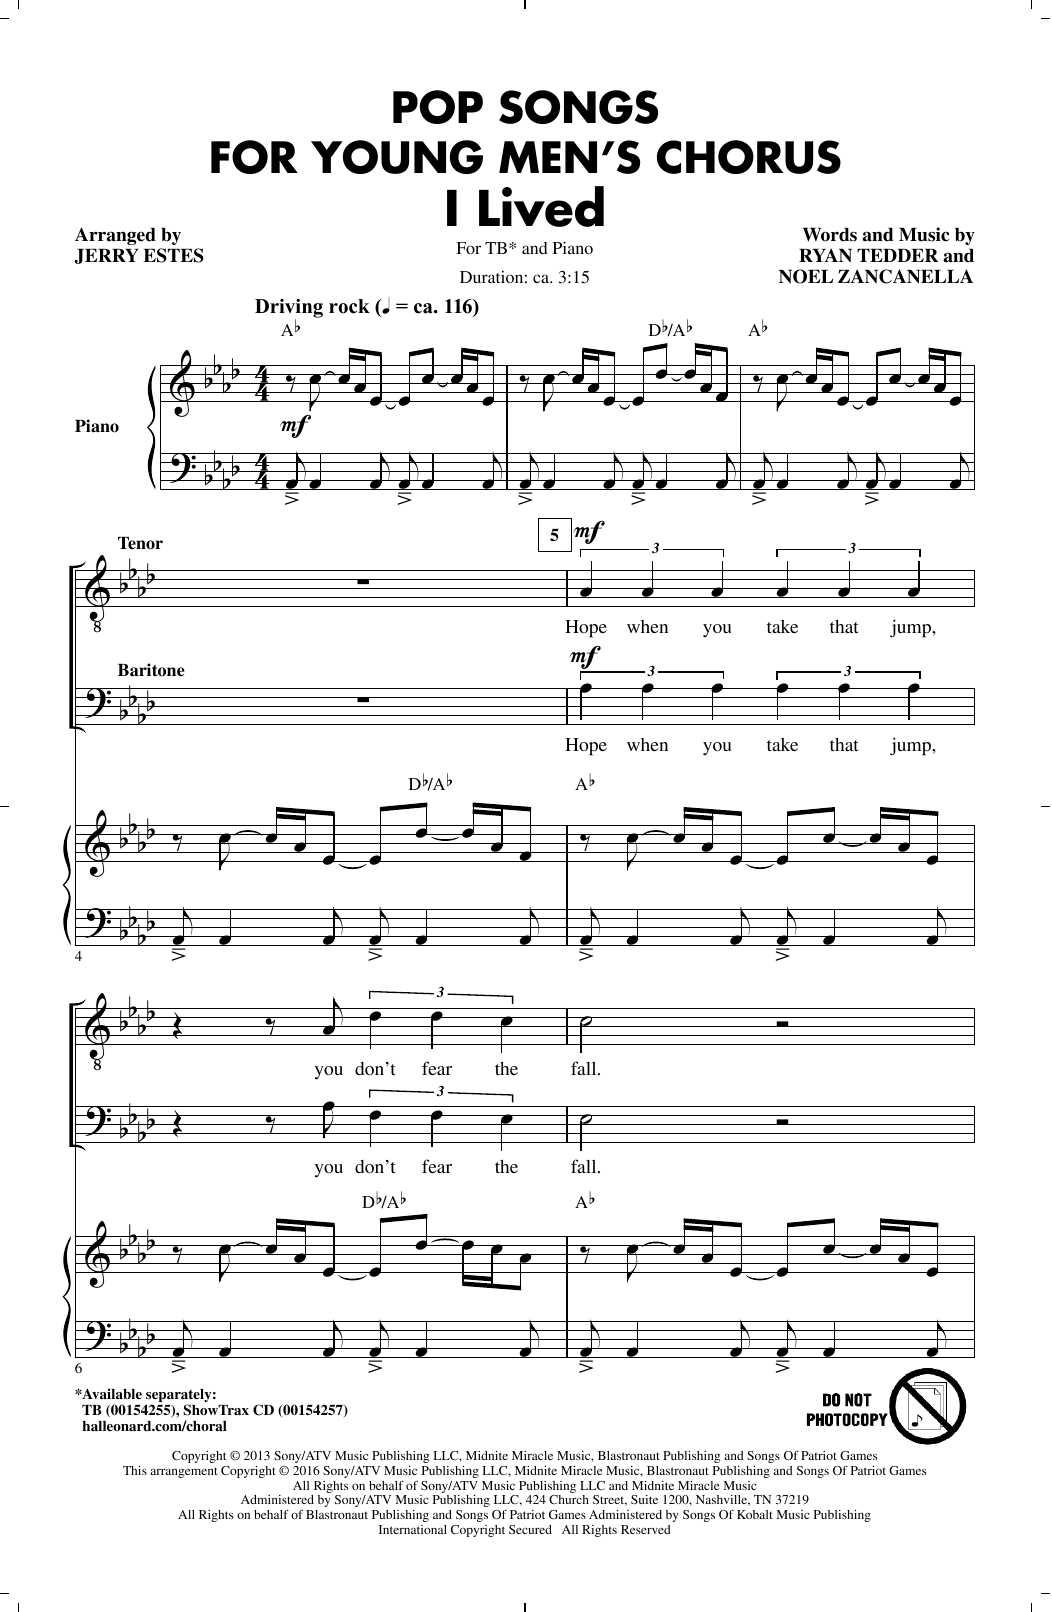 Jerry Estes Pop Songs for Young Men's Chorus sheet music notes and chords. Download Printable PDF.